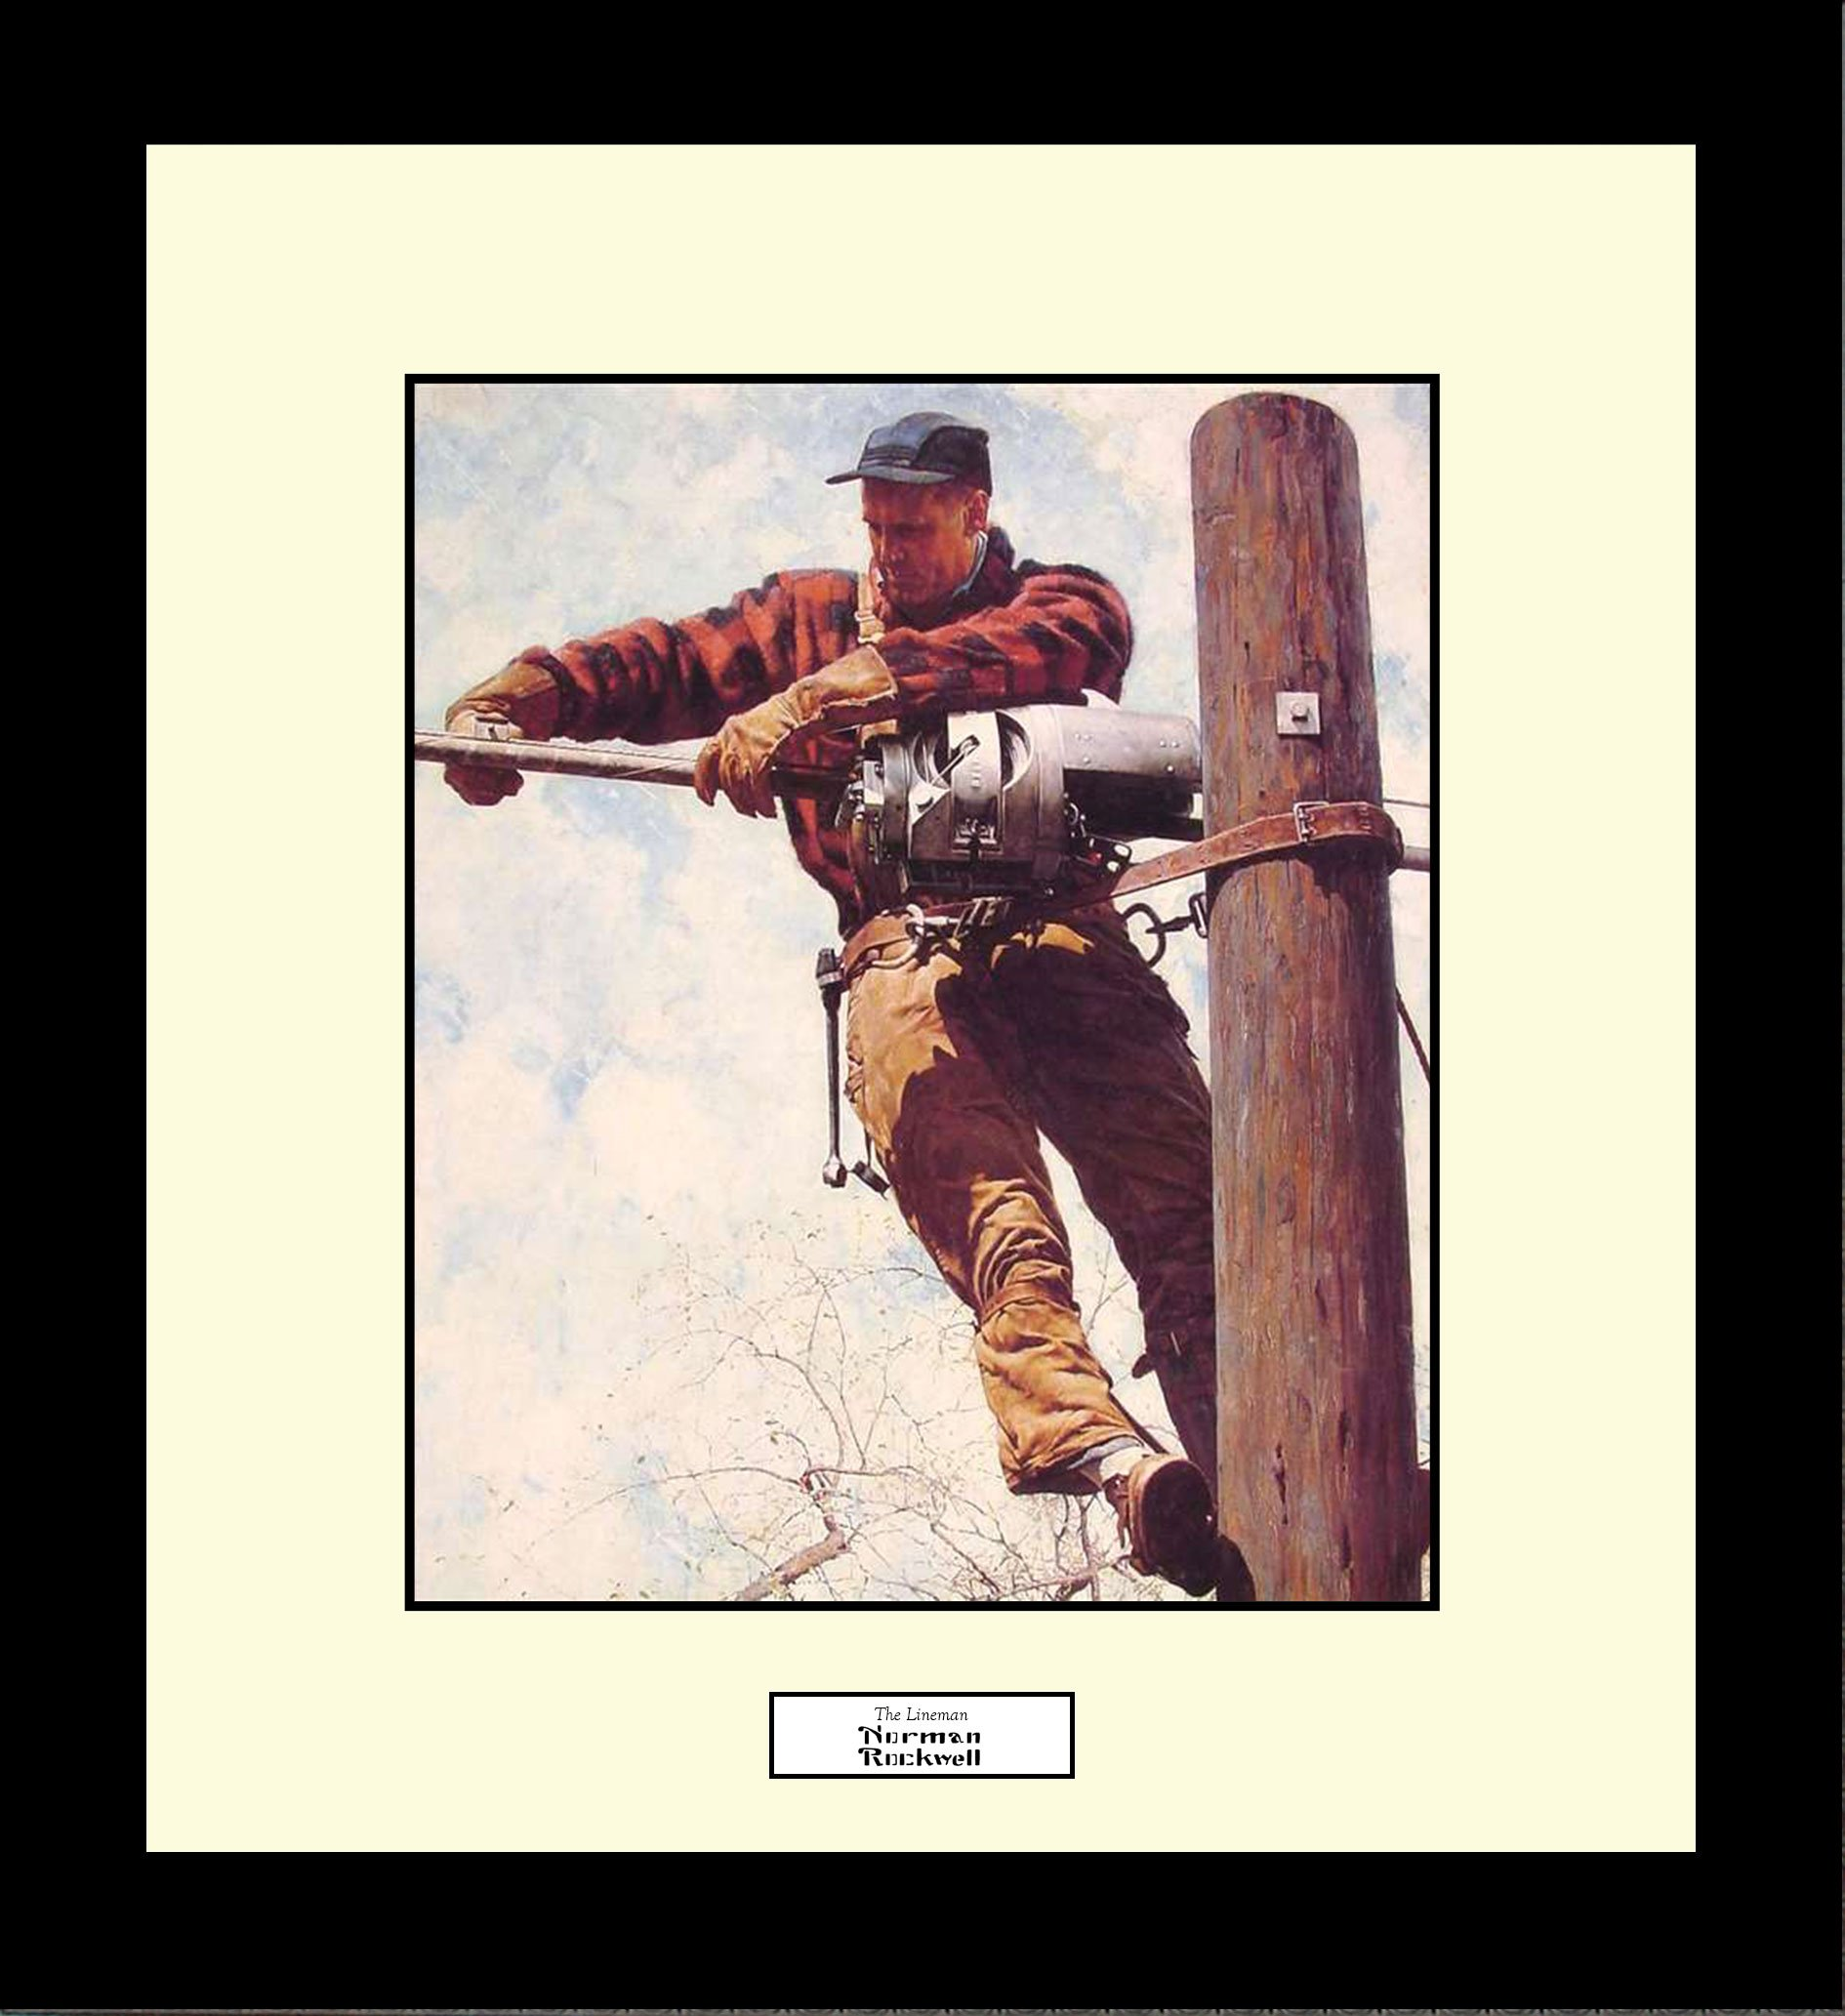 Norman Rockwell THE LINEMAN Framed Electrical Lineman Wall Hanging Art Gift